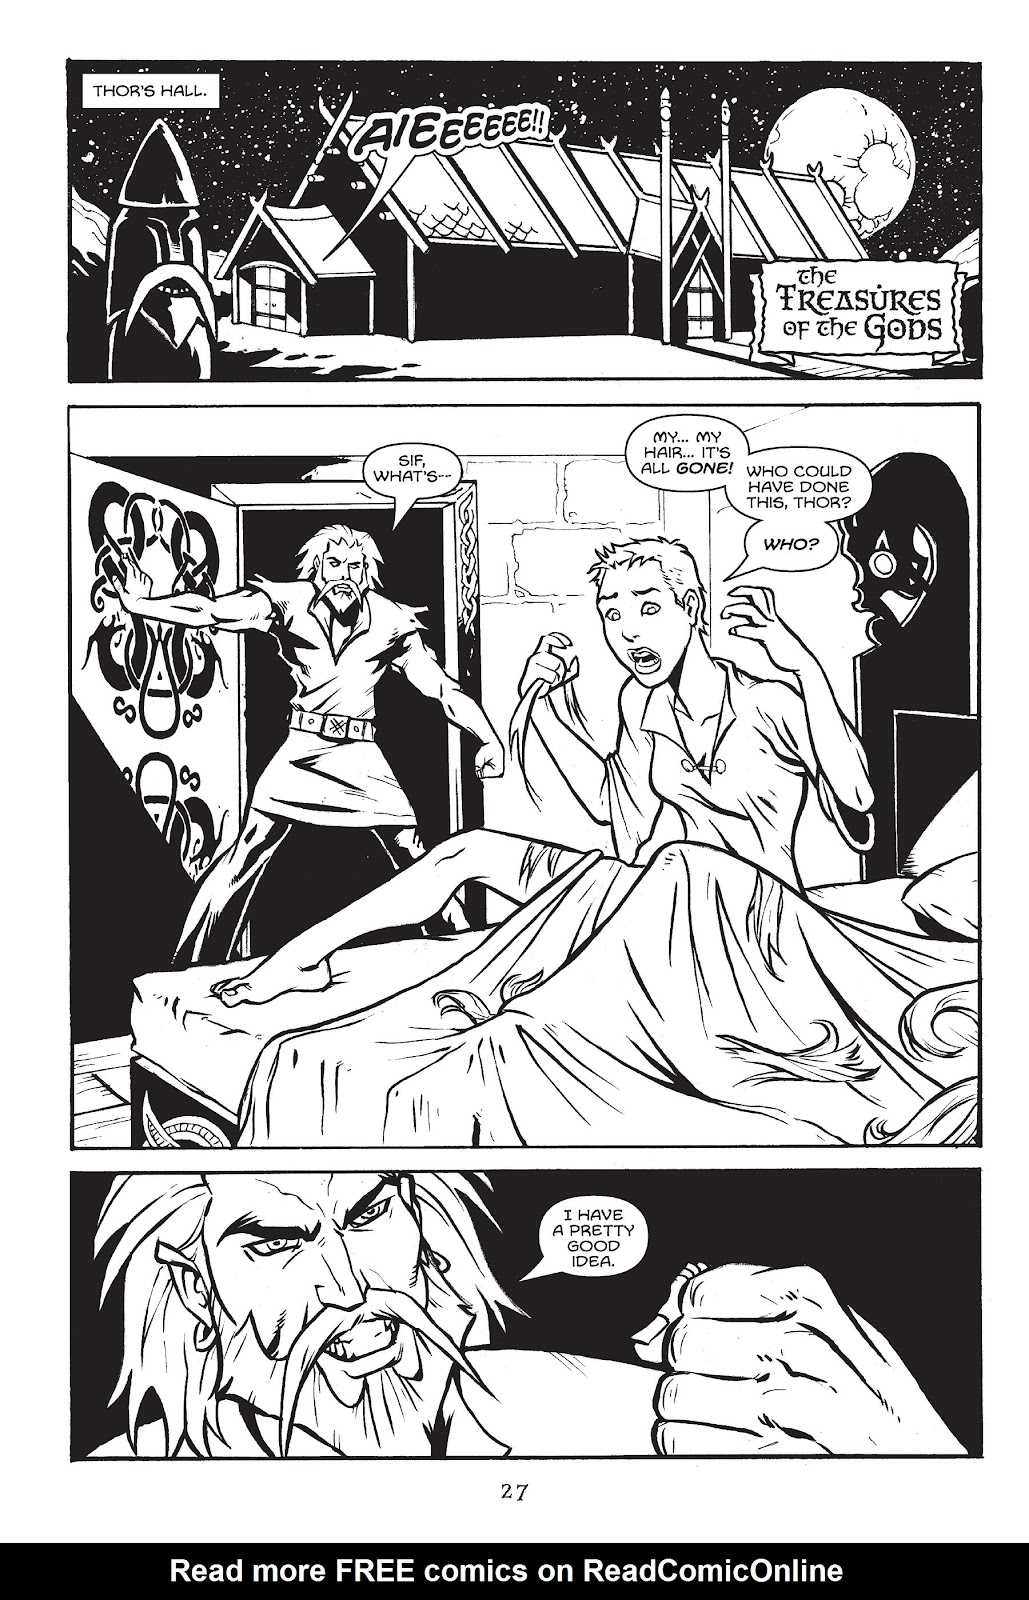 Read online Gods of Asgard comic -  Issue # TPB (Part 1) - 28